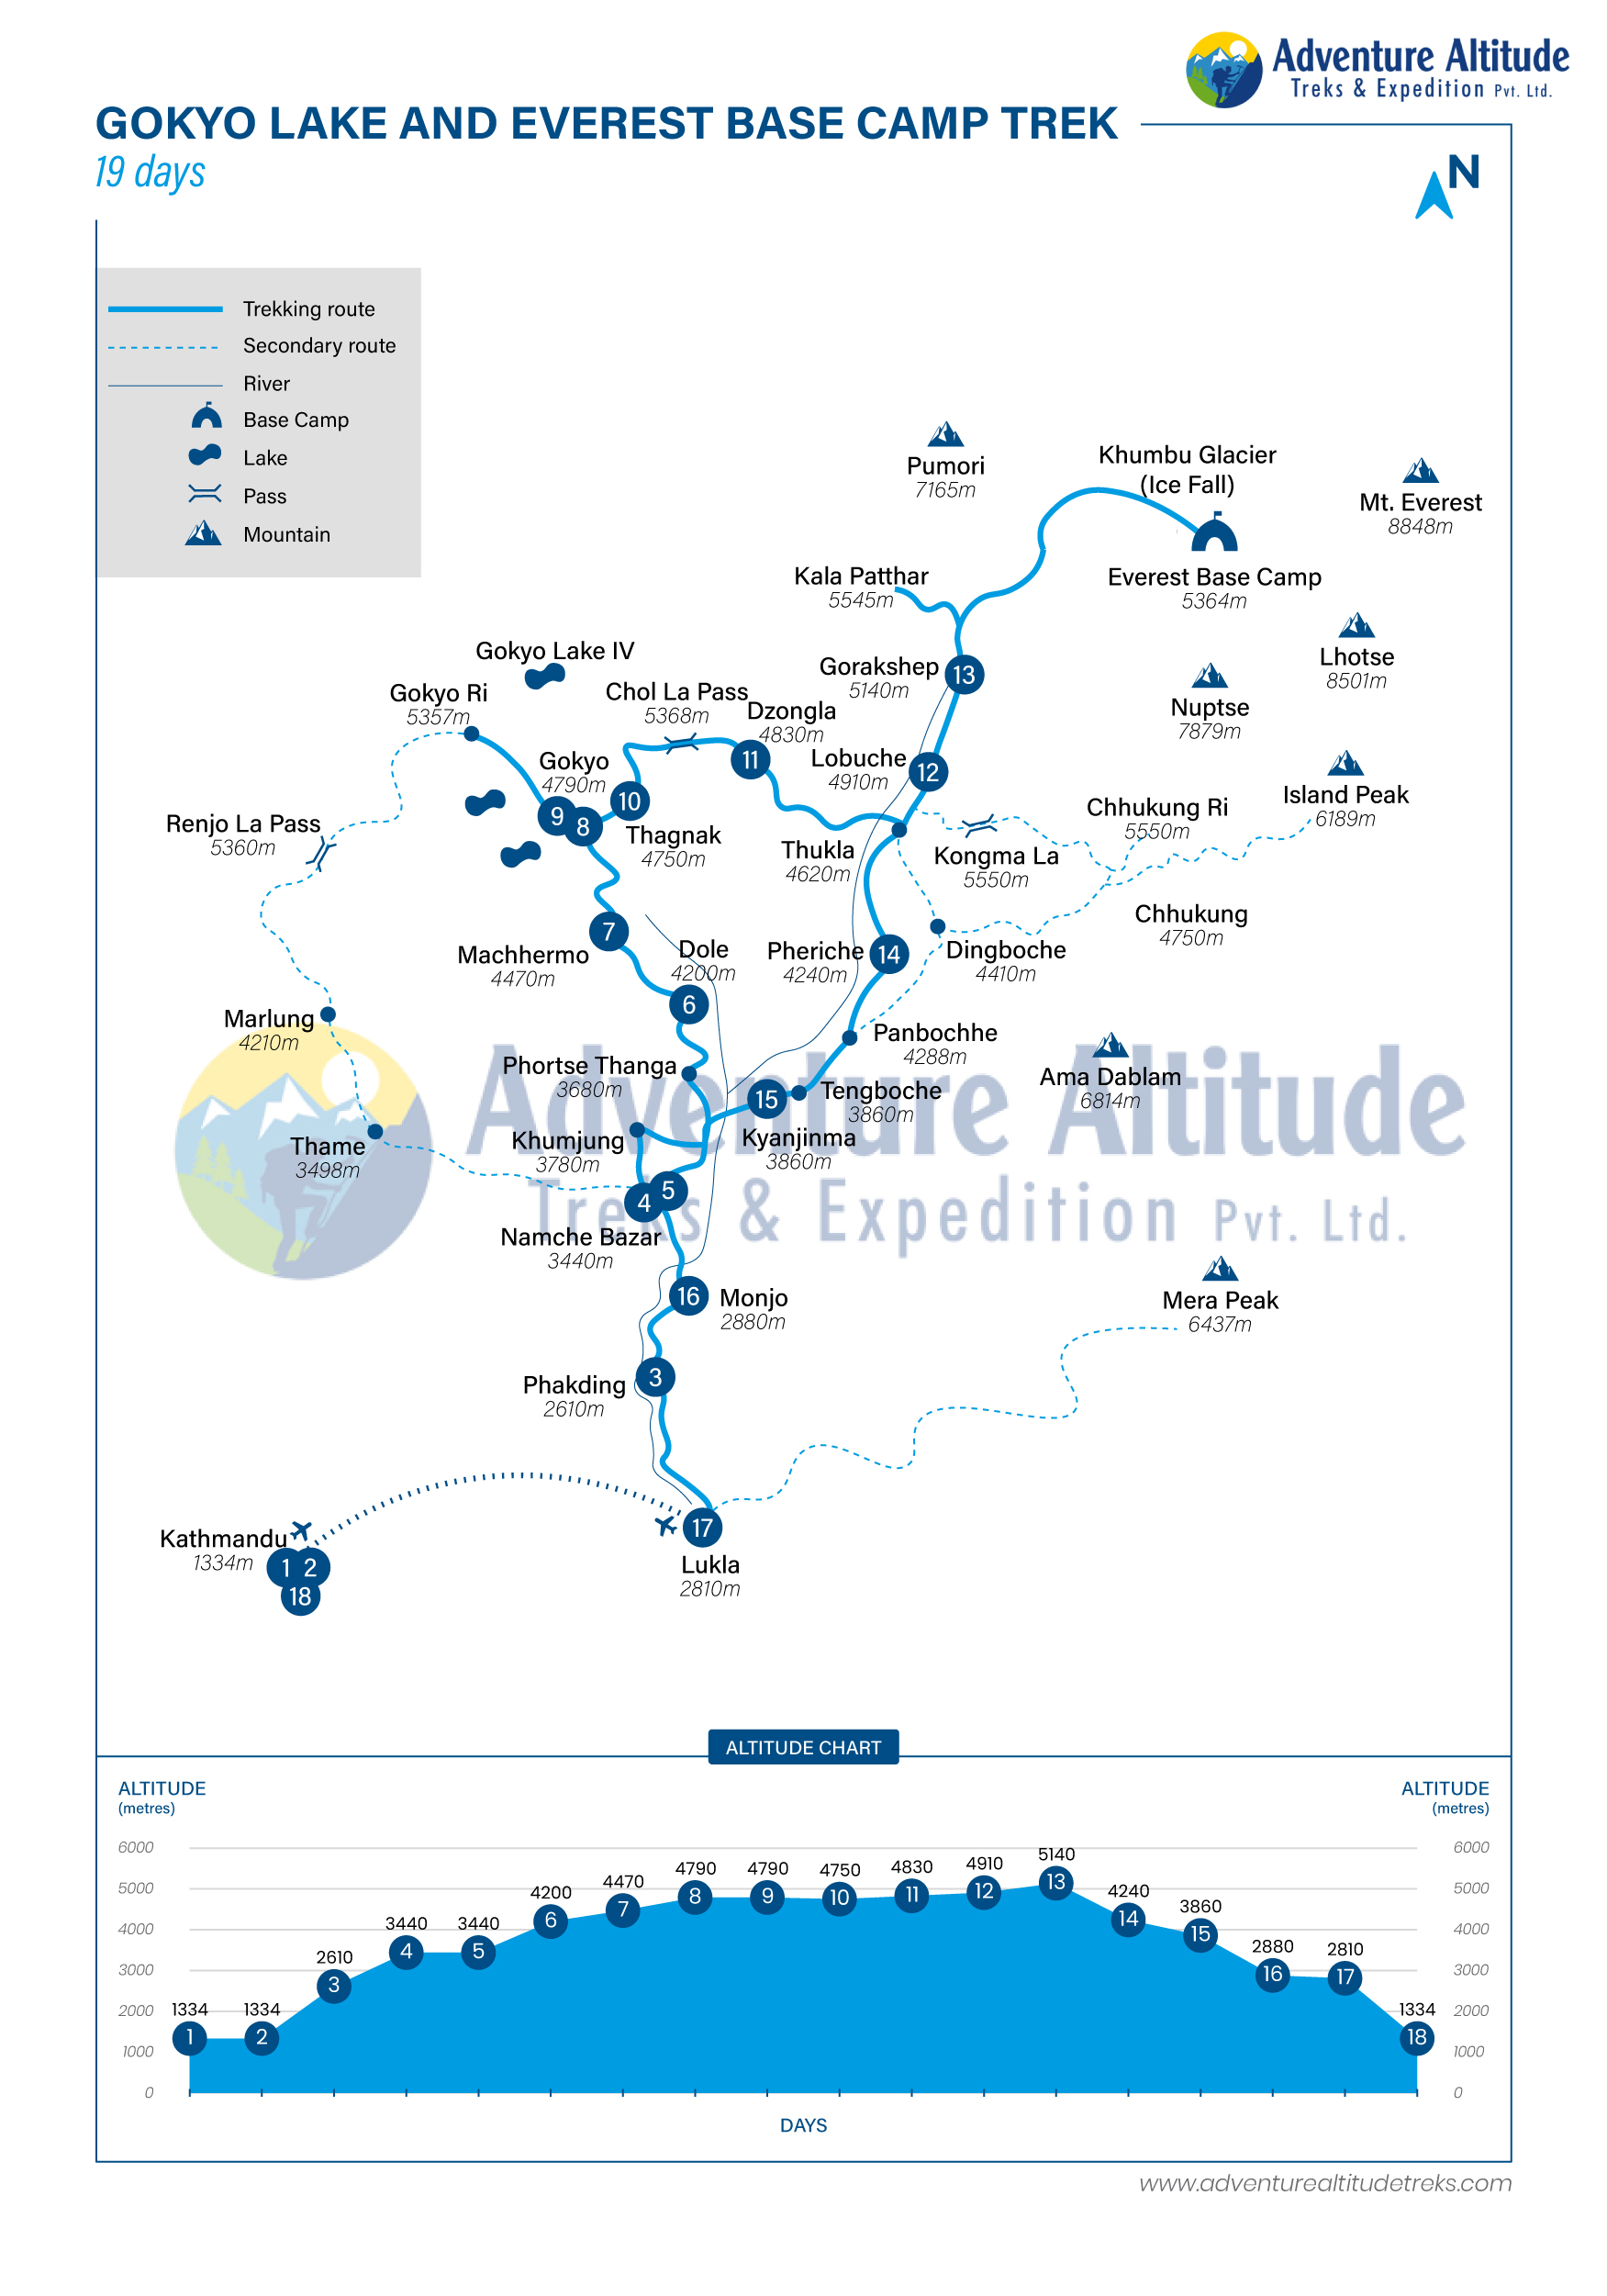 Route Map for Gokyo Lake and Everest Base Camp Trekking | Adventure Altitude